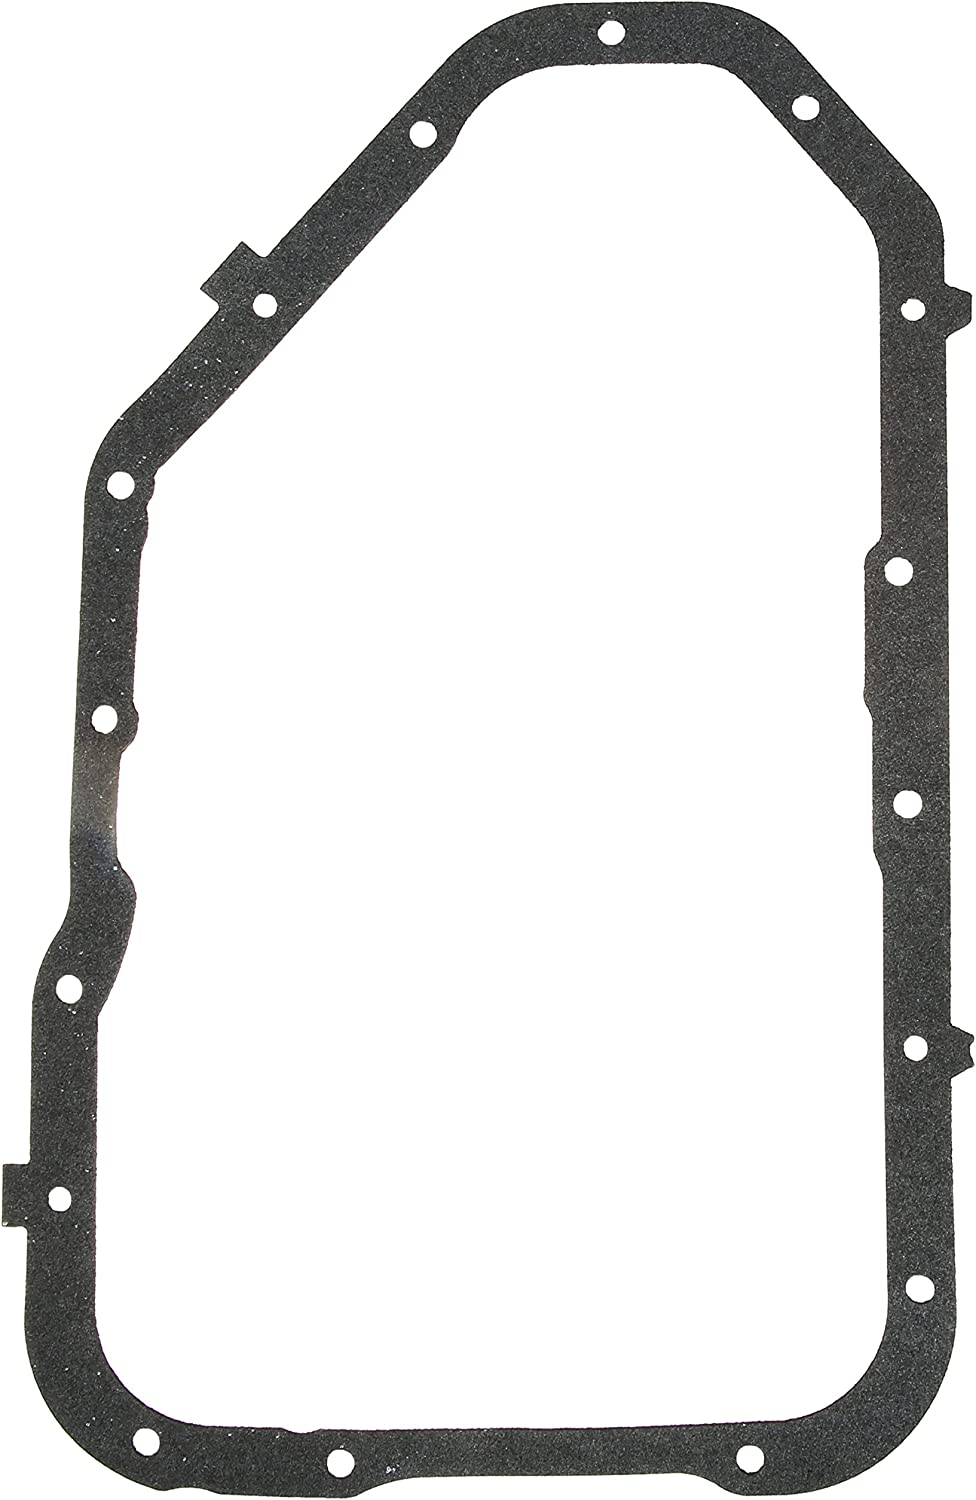 ATP CG-22 Automatic Transmission Oil Pan Gasket